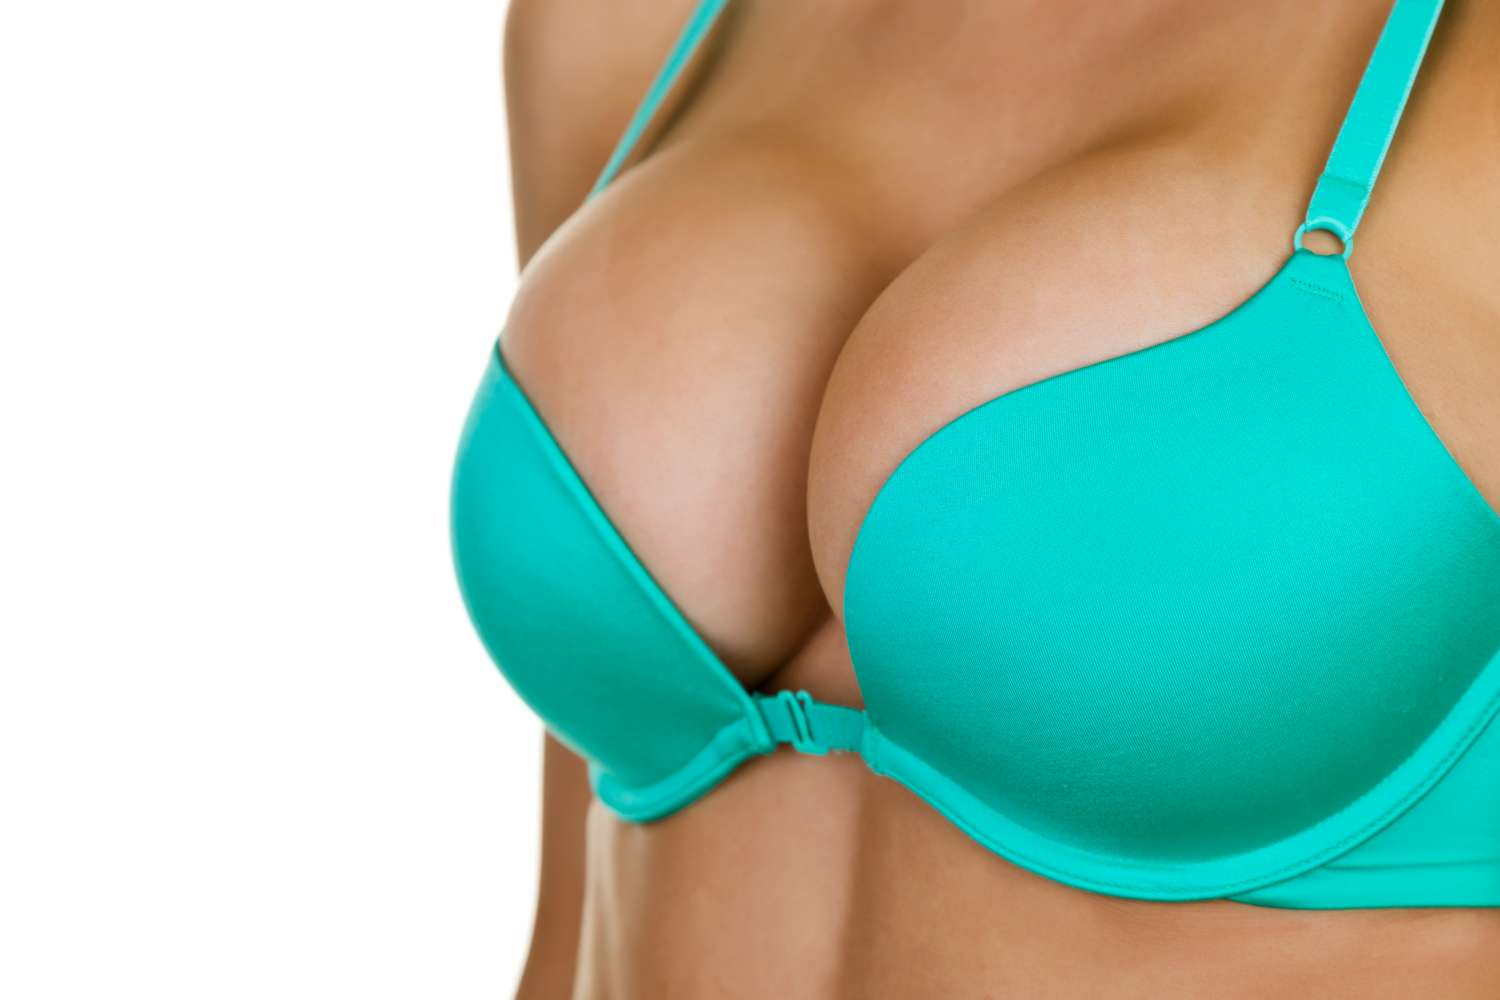 Contraindications and precautions of breast augmentation surgery